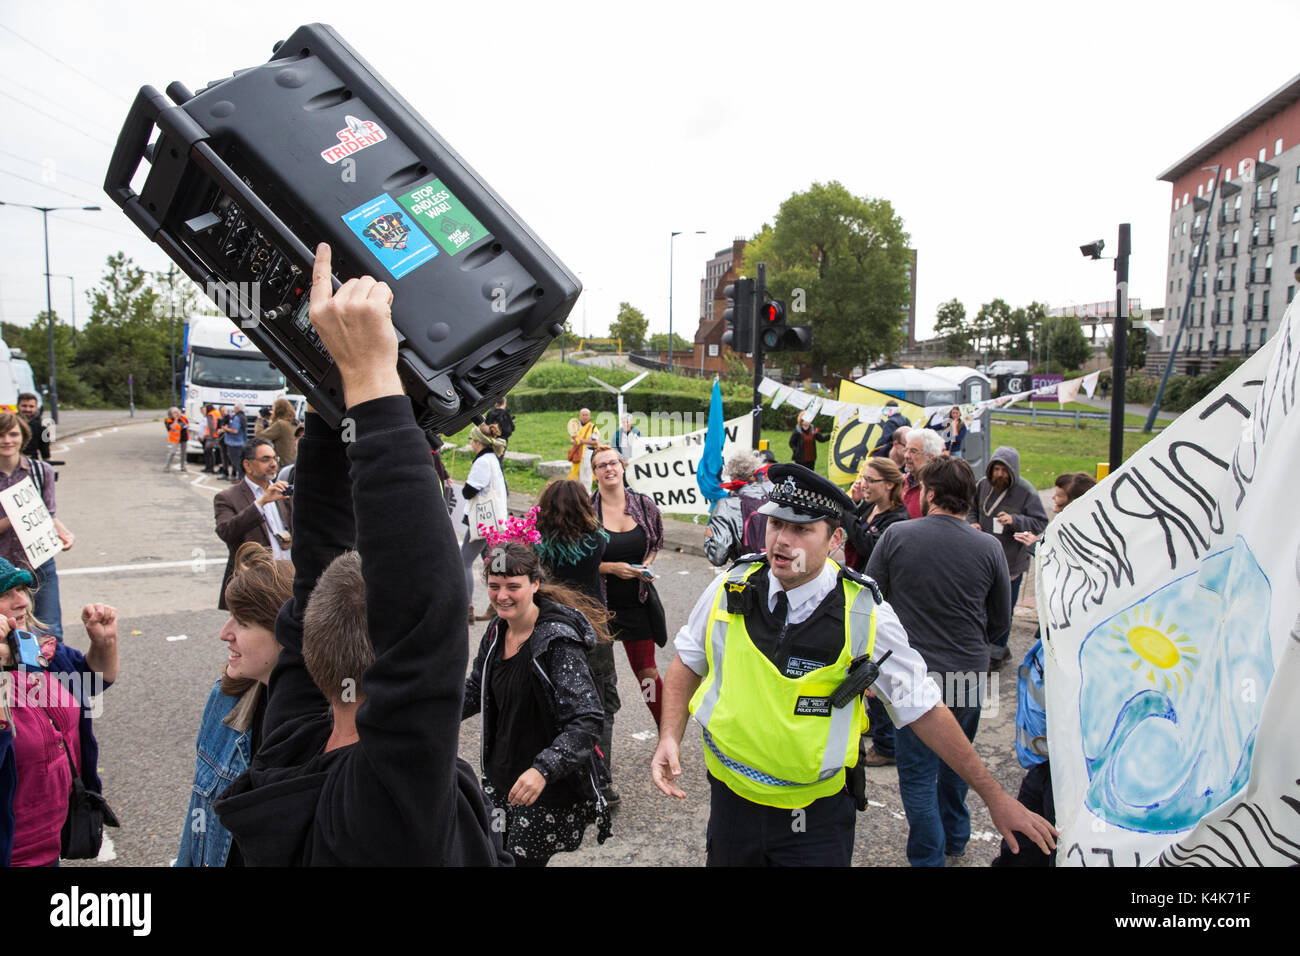 London, UK. 6th Sep, 2017. Arms to Renewables activists dance in the roadway to block the access road to the ExCel Centre to prevent military equipment arriving by truck for the DSEI arms fair next week. Credit: Mark Kerrison/Alamy Live News - Stock Image